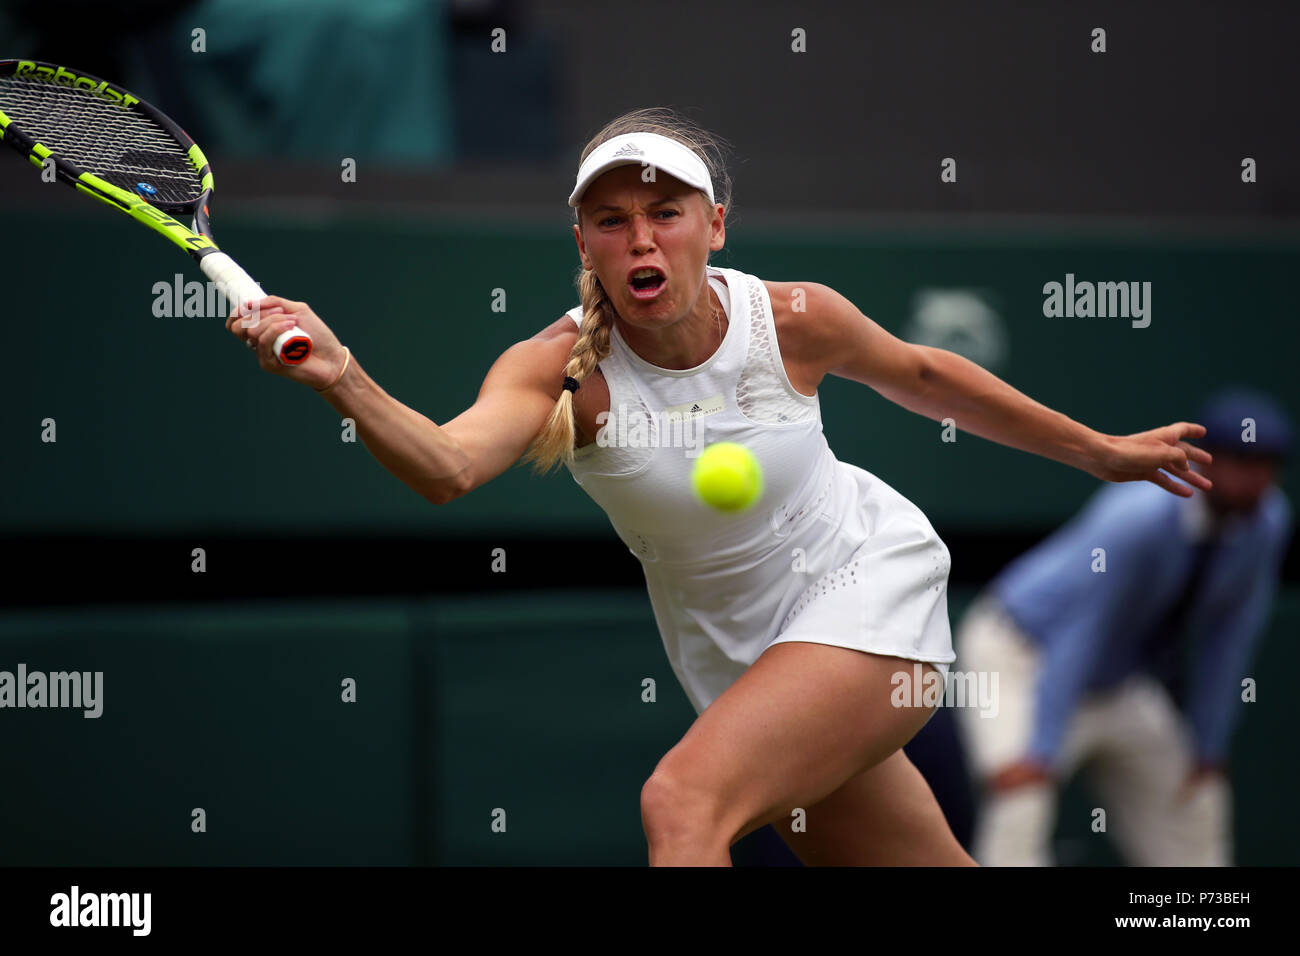 London, England - July 4th, 2018.  Wimbledon Tennis:  Number 2 seed Caroline Wozniacki of Denmark during her match against Ekaterina Makarova in the second round at Wimbledon today. Credit: Adam Stoltman/Alamy Live News Stock Photo